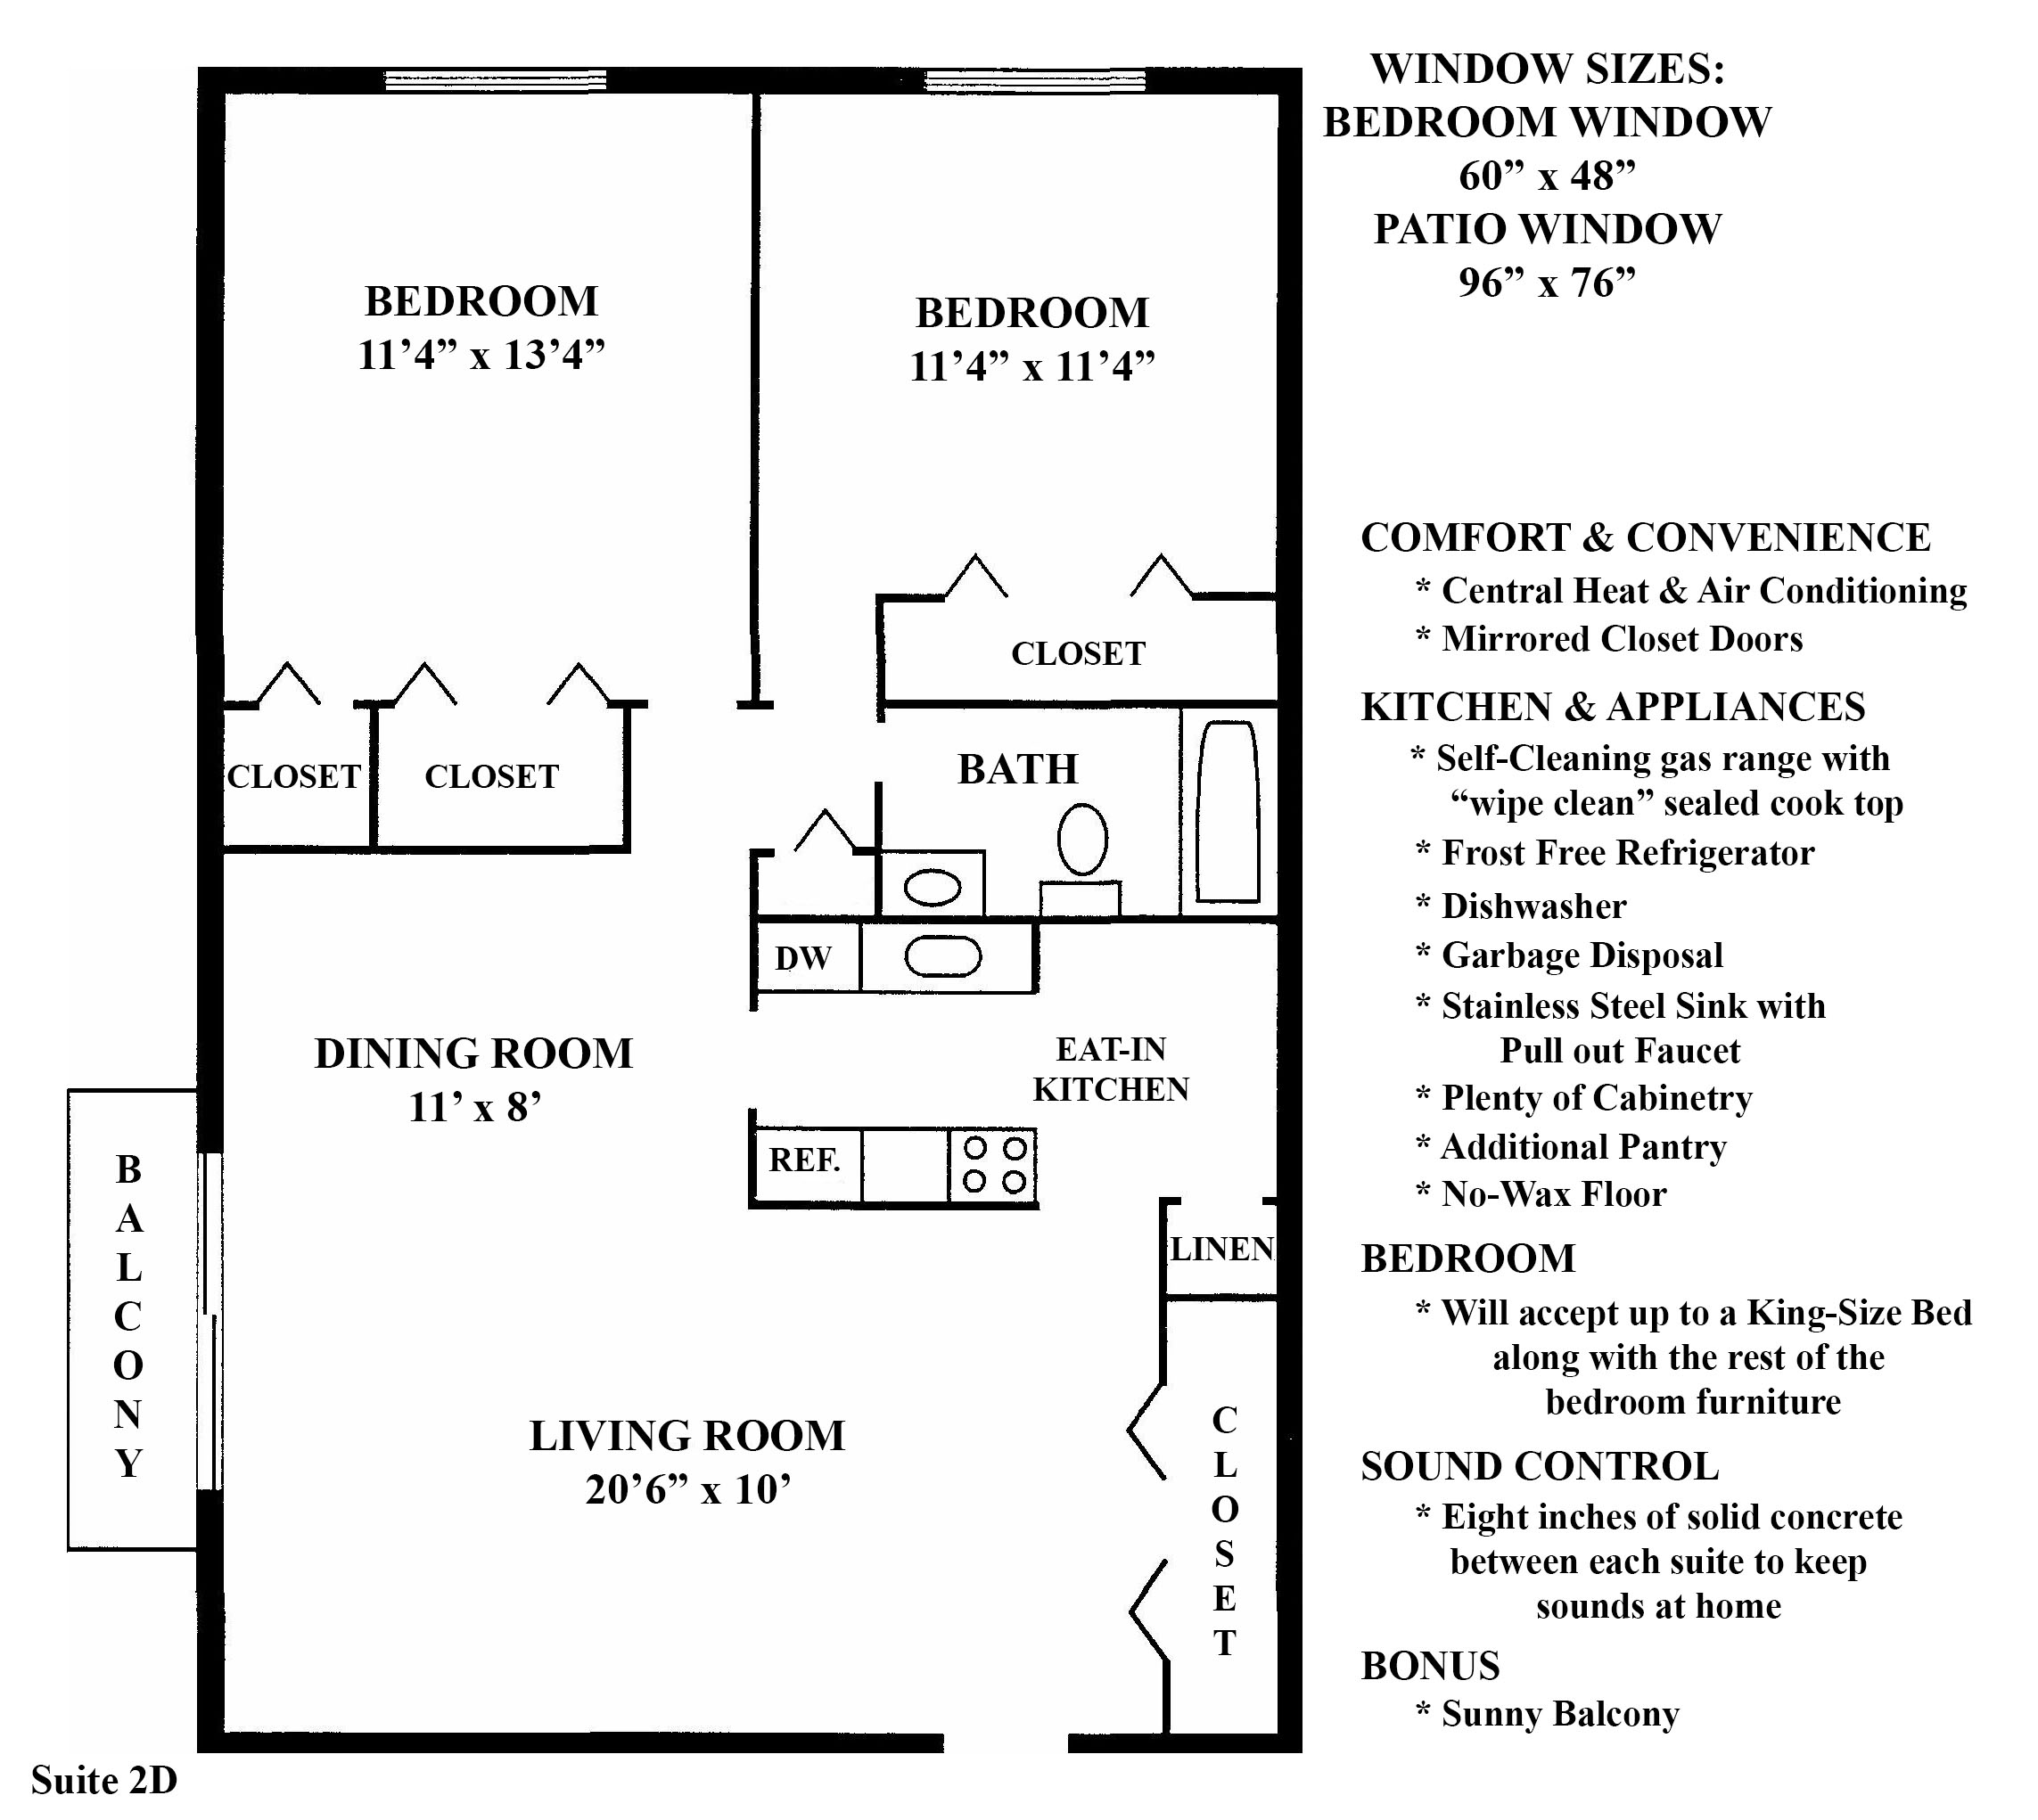 2D Floorplan at the Greenridge on Euclid Apartments in Euclid, OH